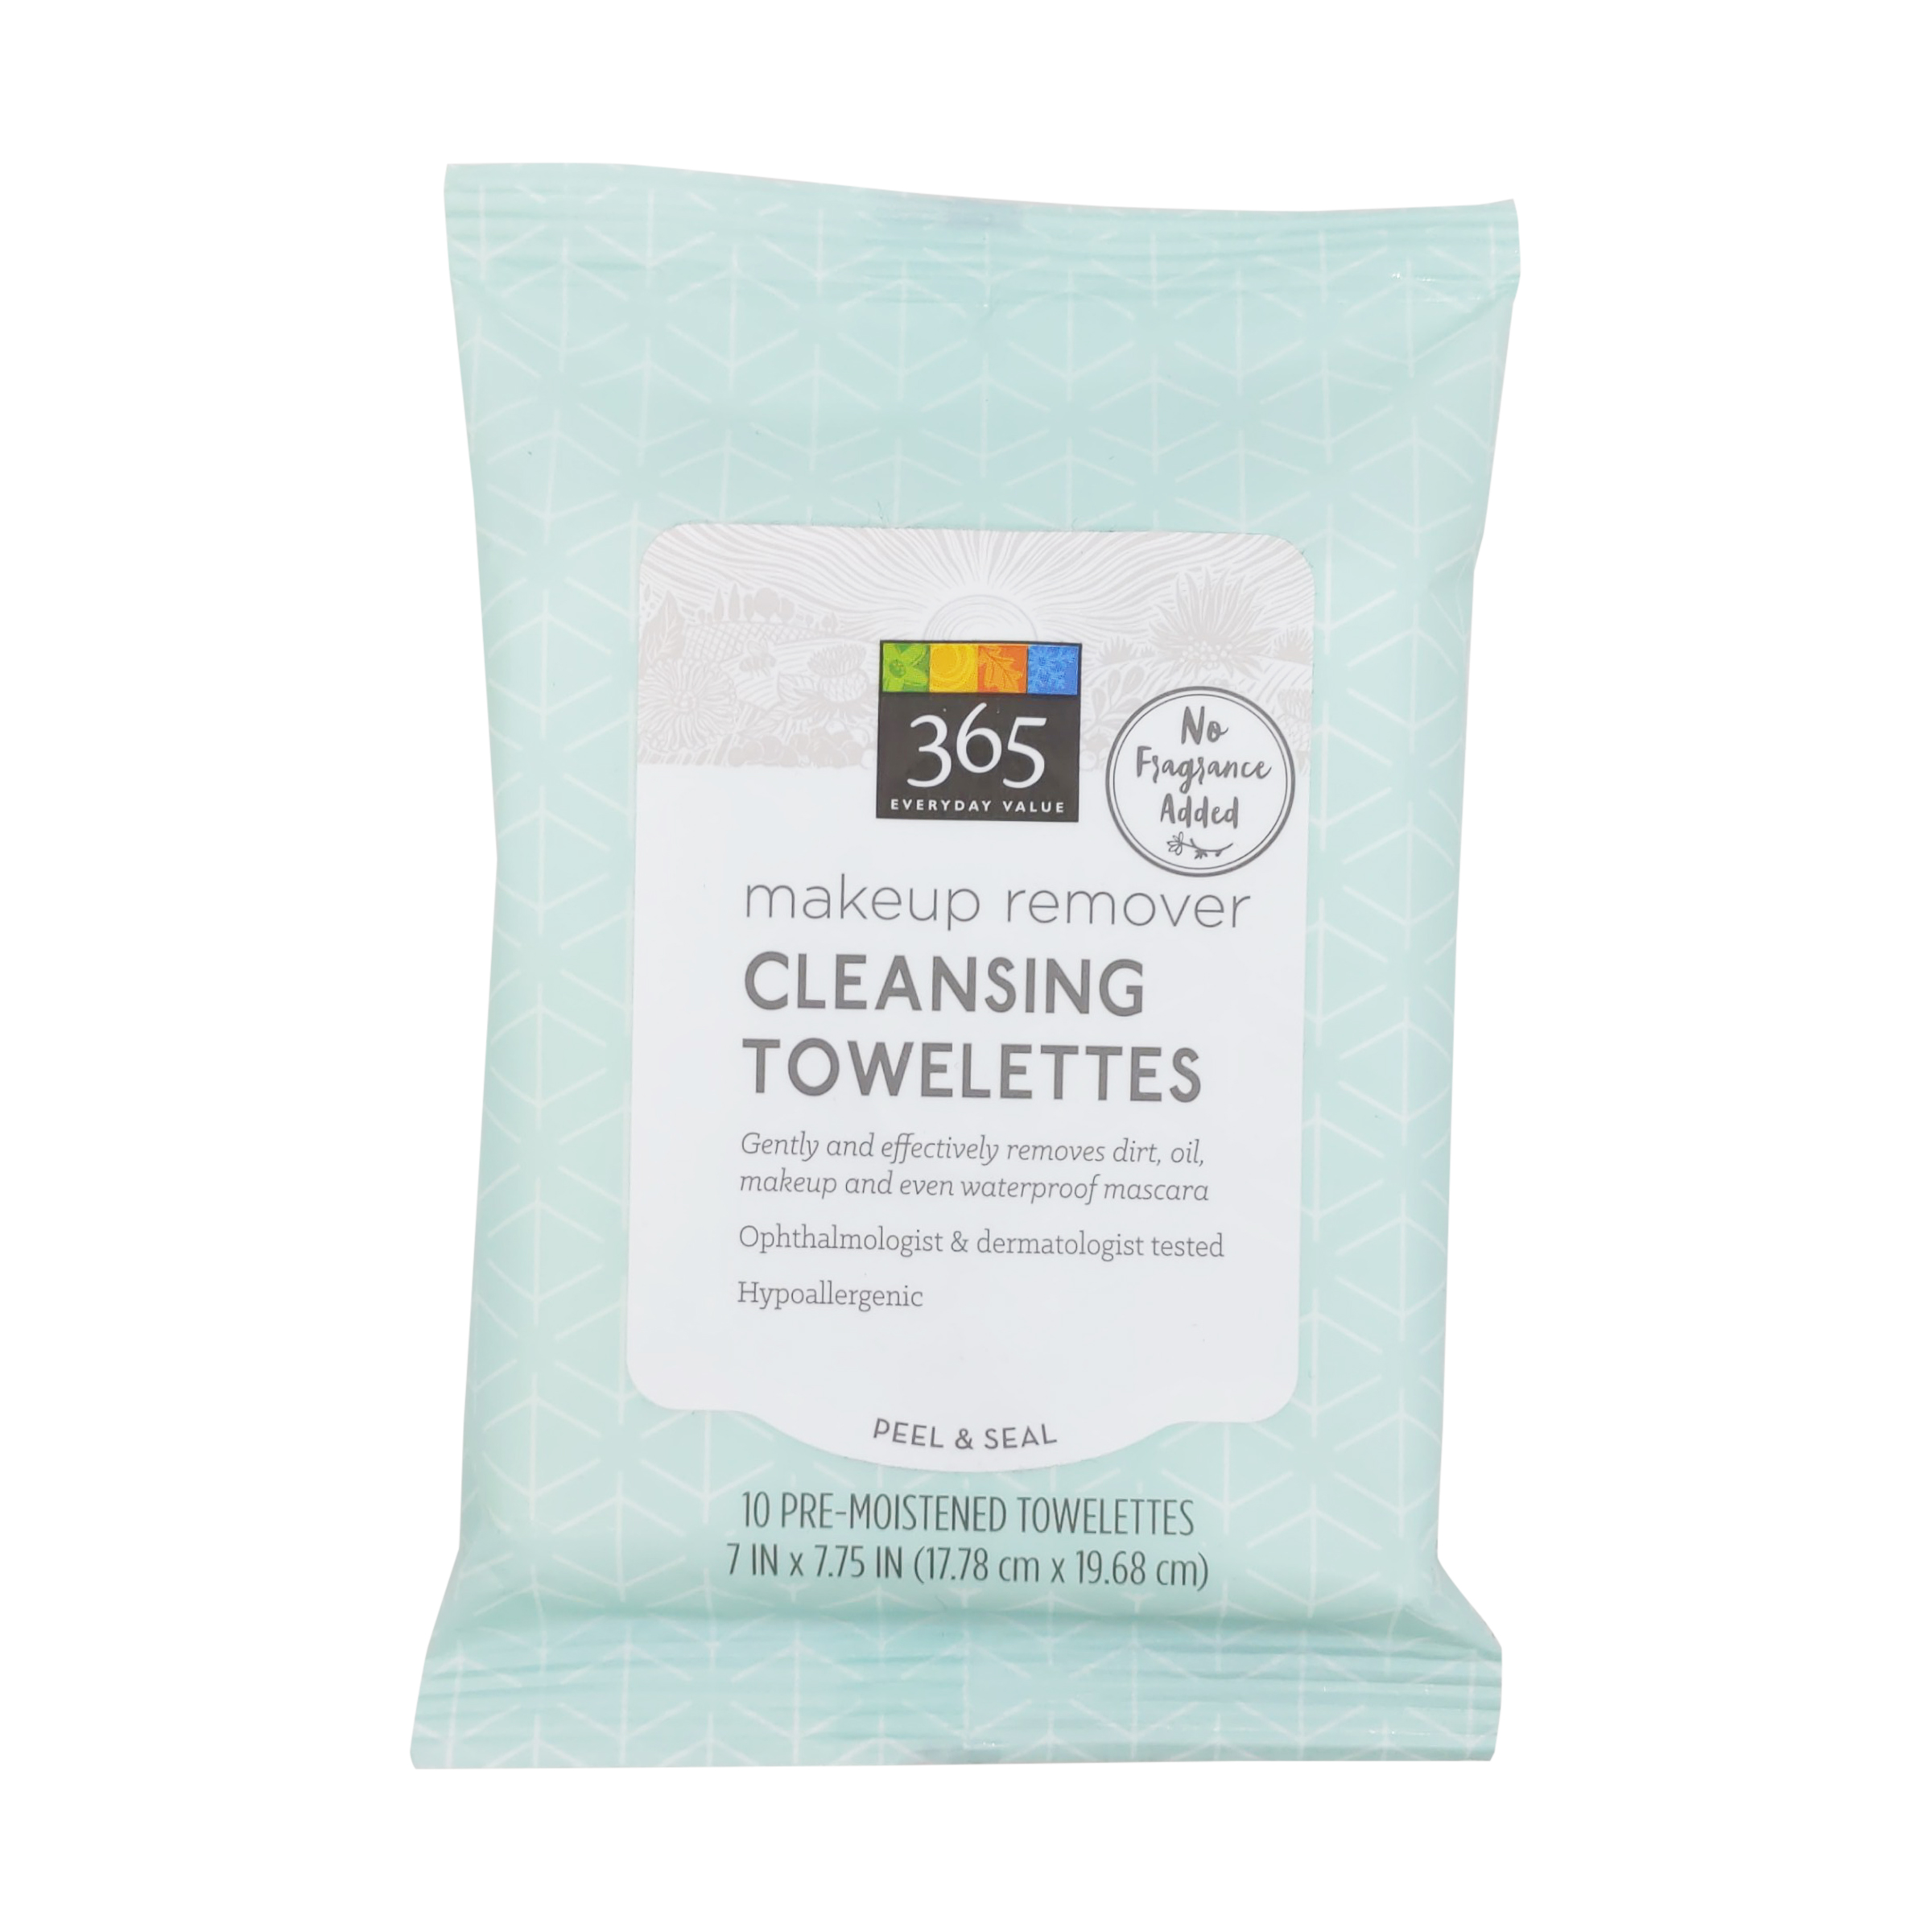 Makeup Remover Cleansing Towelettes 10